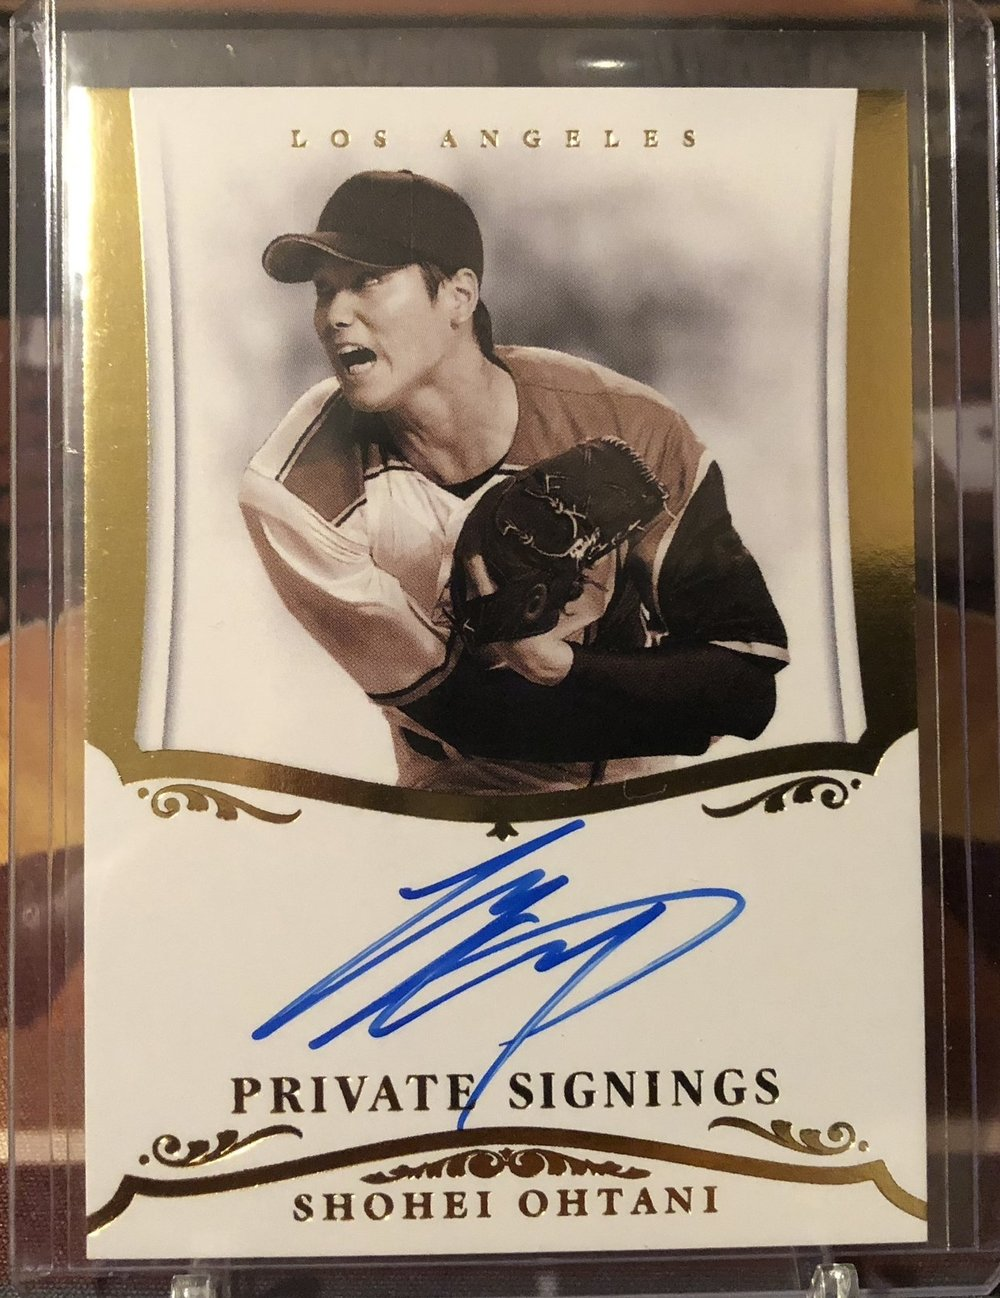 2018 Panini Diamond Kings Shohei Ohtani Private Signings Auto /50